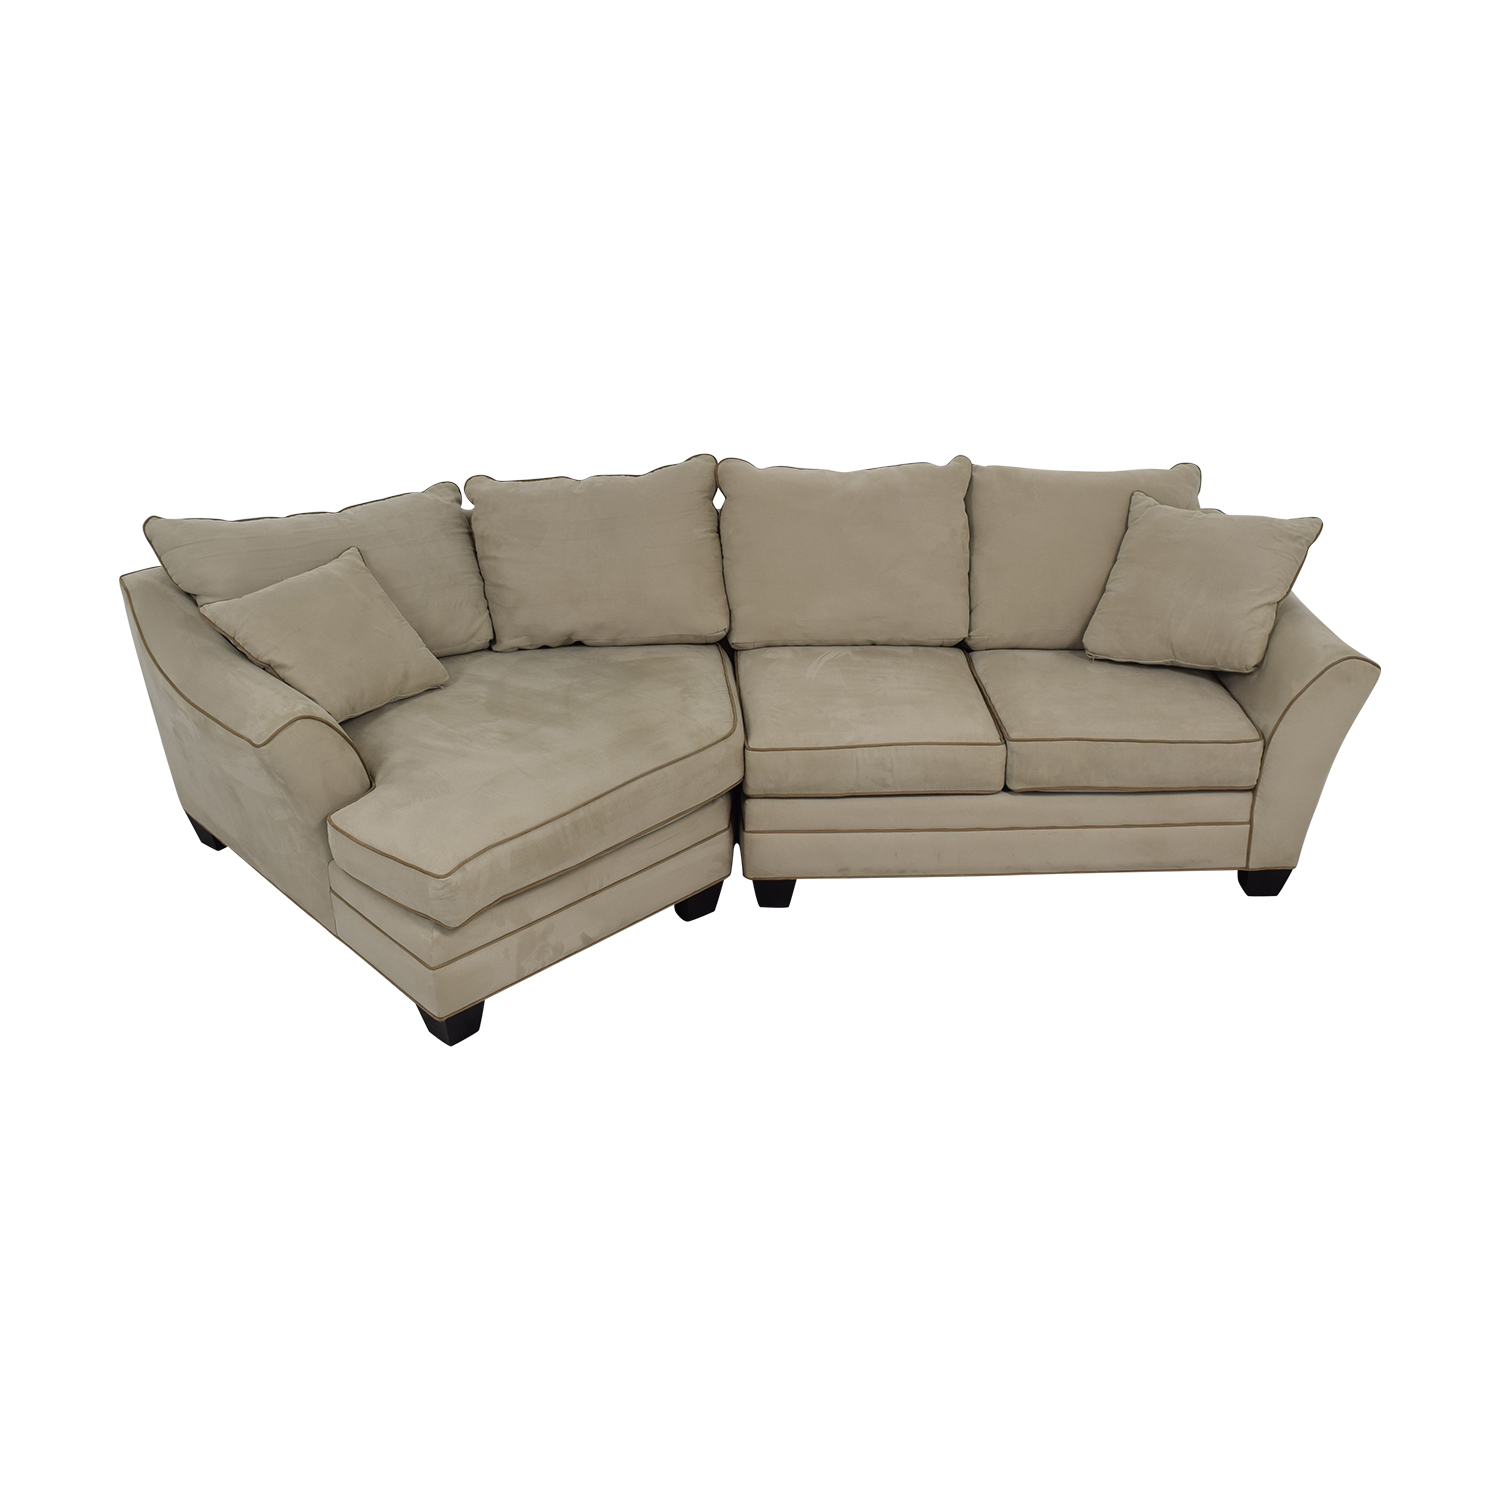 Raymour & Flanigan Raymour & Flanigan Foresthill Microfiber Beige Sectional with Angled Chaise